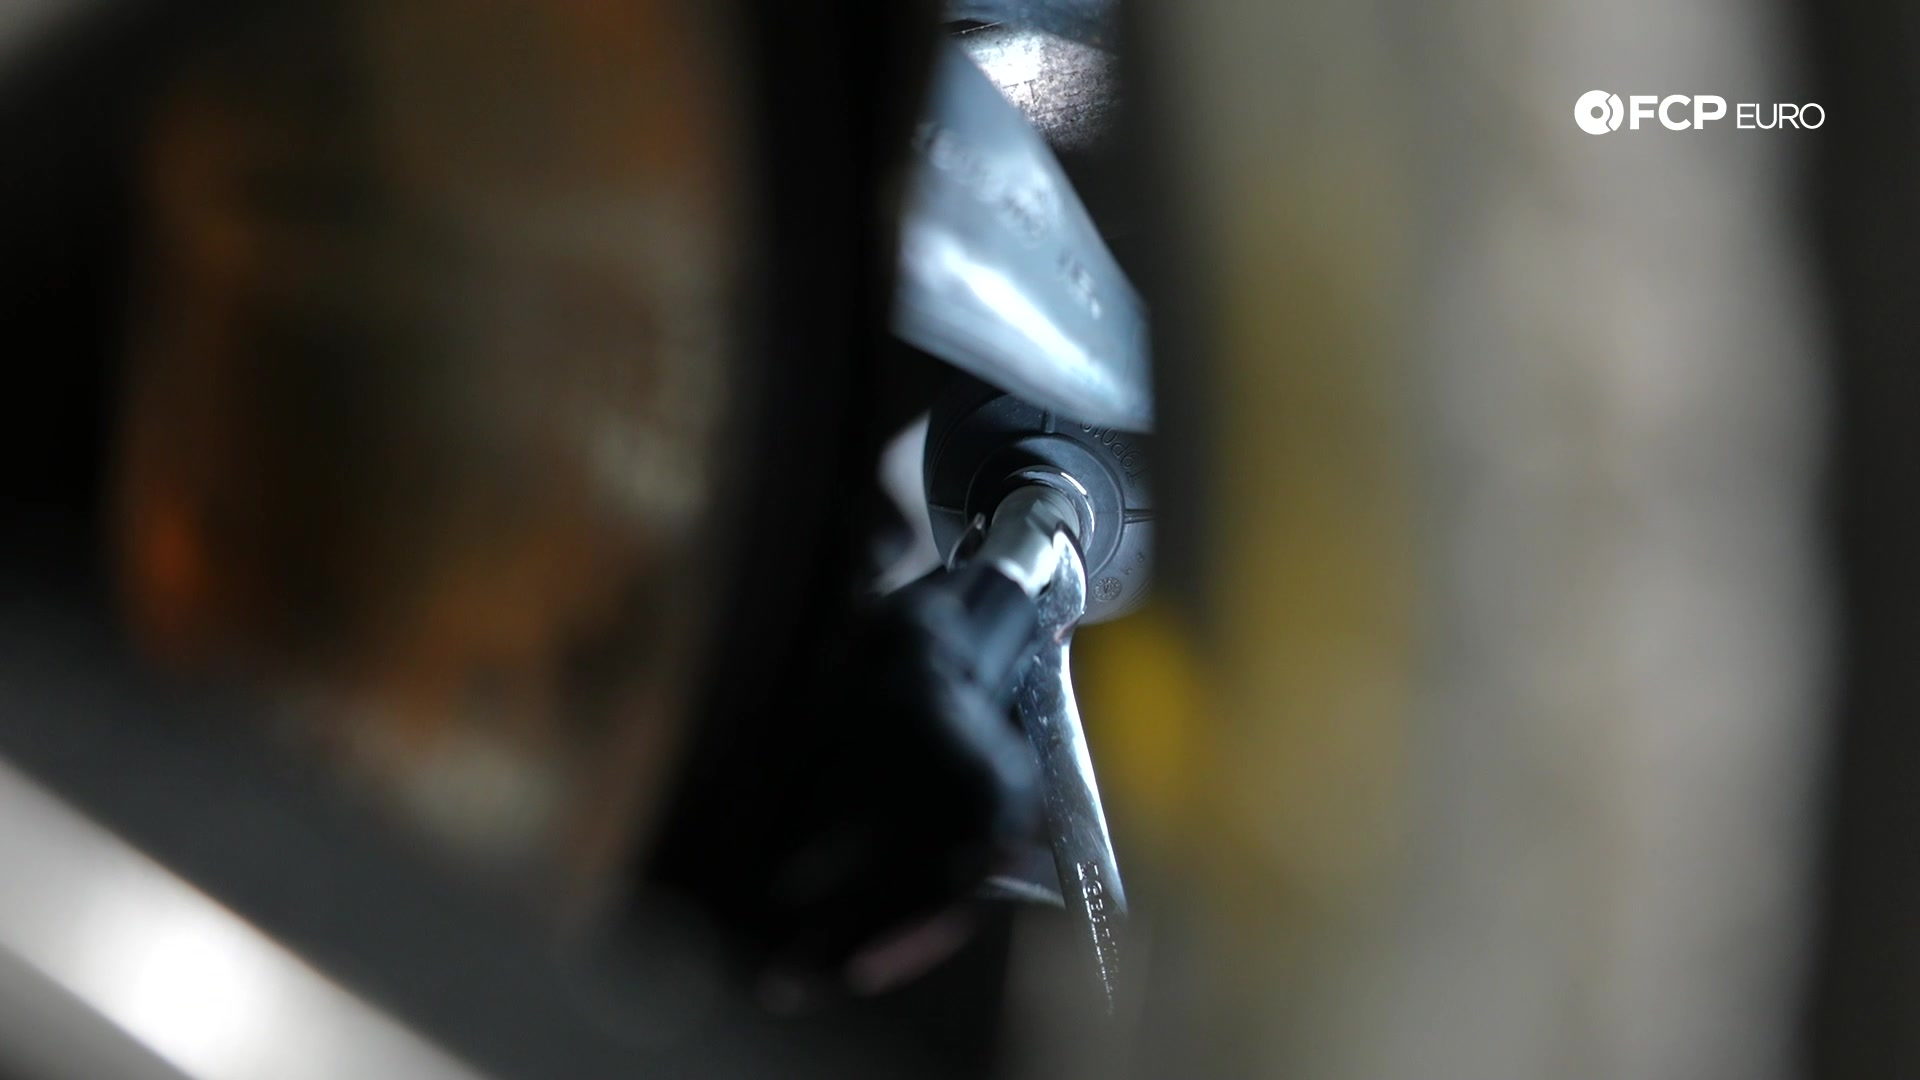 DIY BMW E90 Tie Rod Replacement adjusting the toe